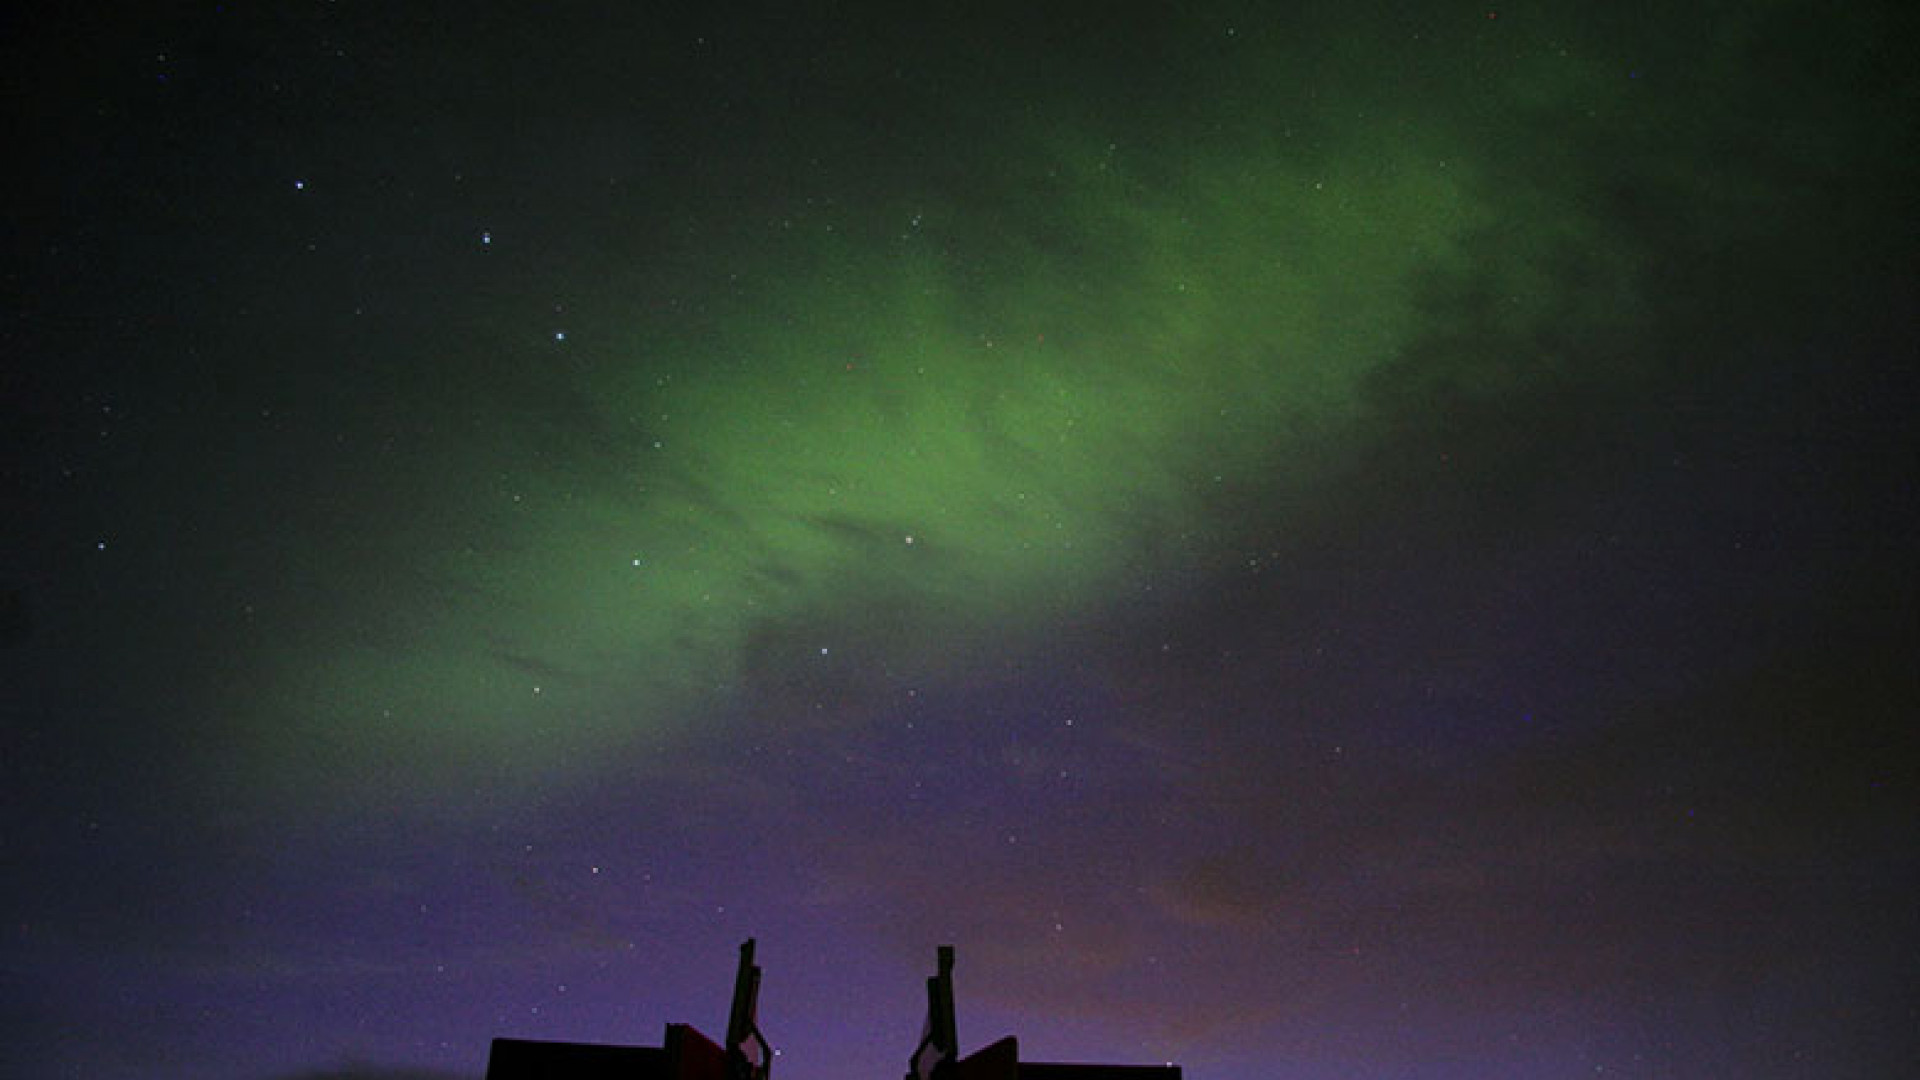 Aurora-(Northern-Lights)-over-Kielder-Obs